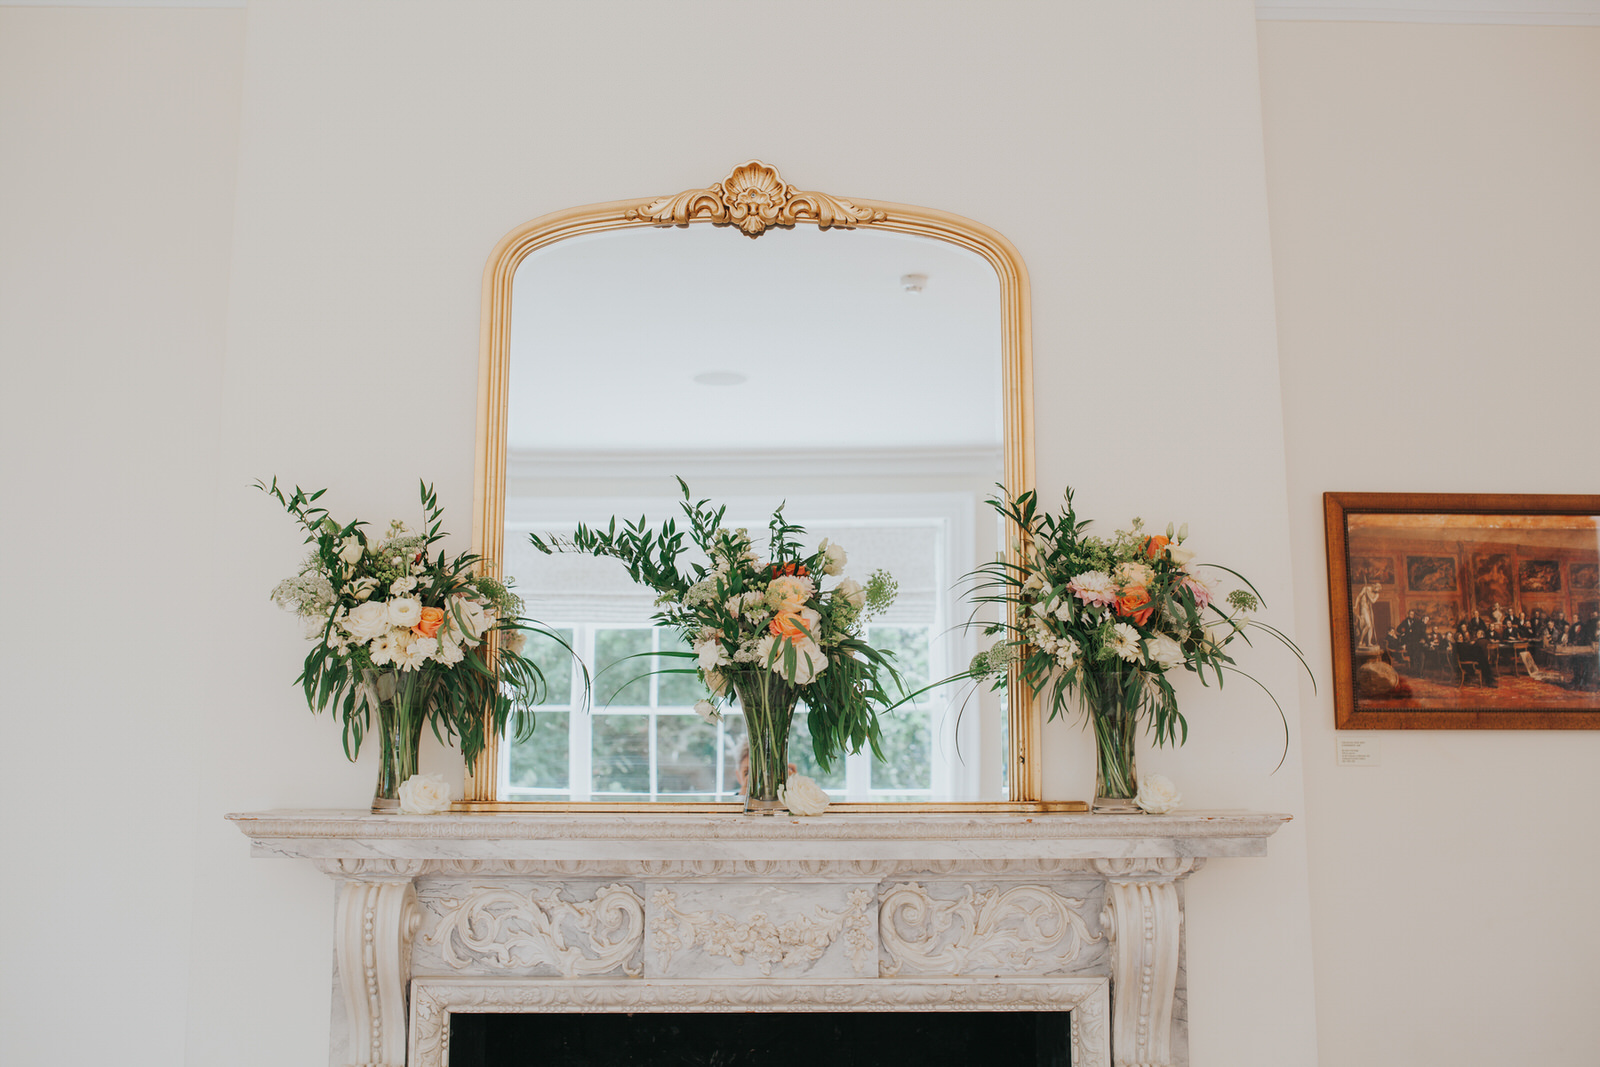 2-Pembroke Lodge ceremony room Russell Suite wedding flowers-1.jpg